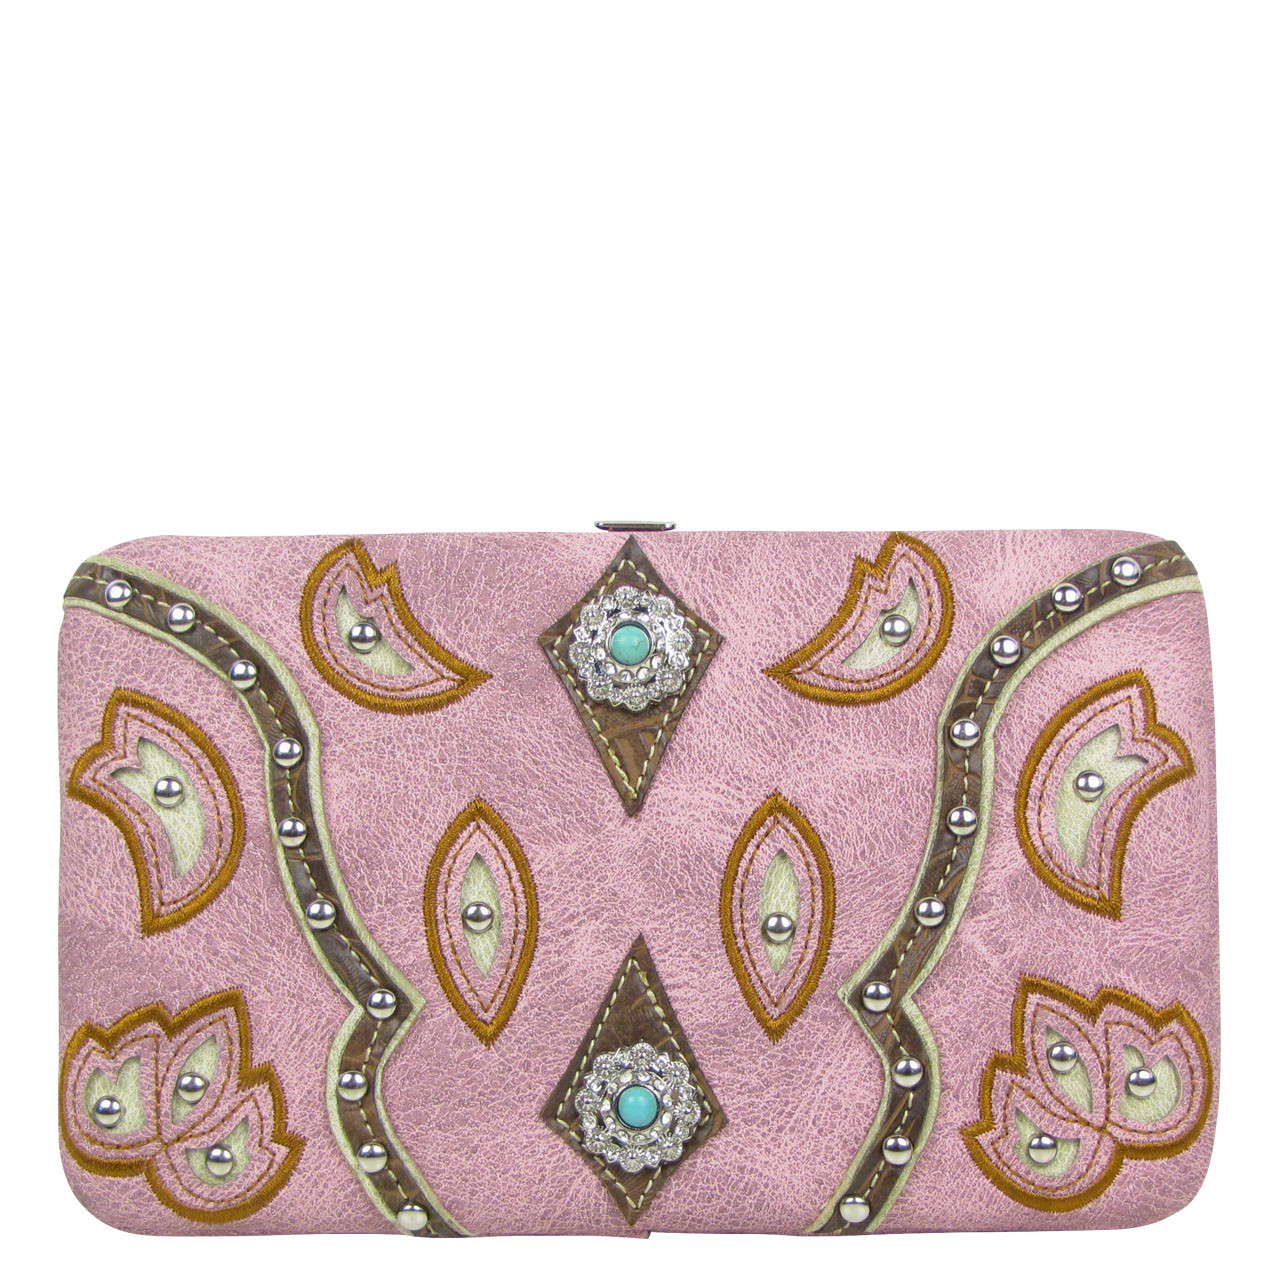 PINK STUDDED LOOK FLAT THICK WALLET FW2-12123PNK